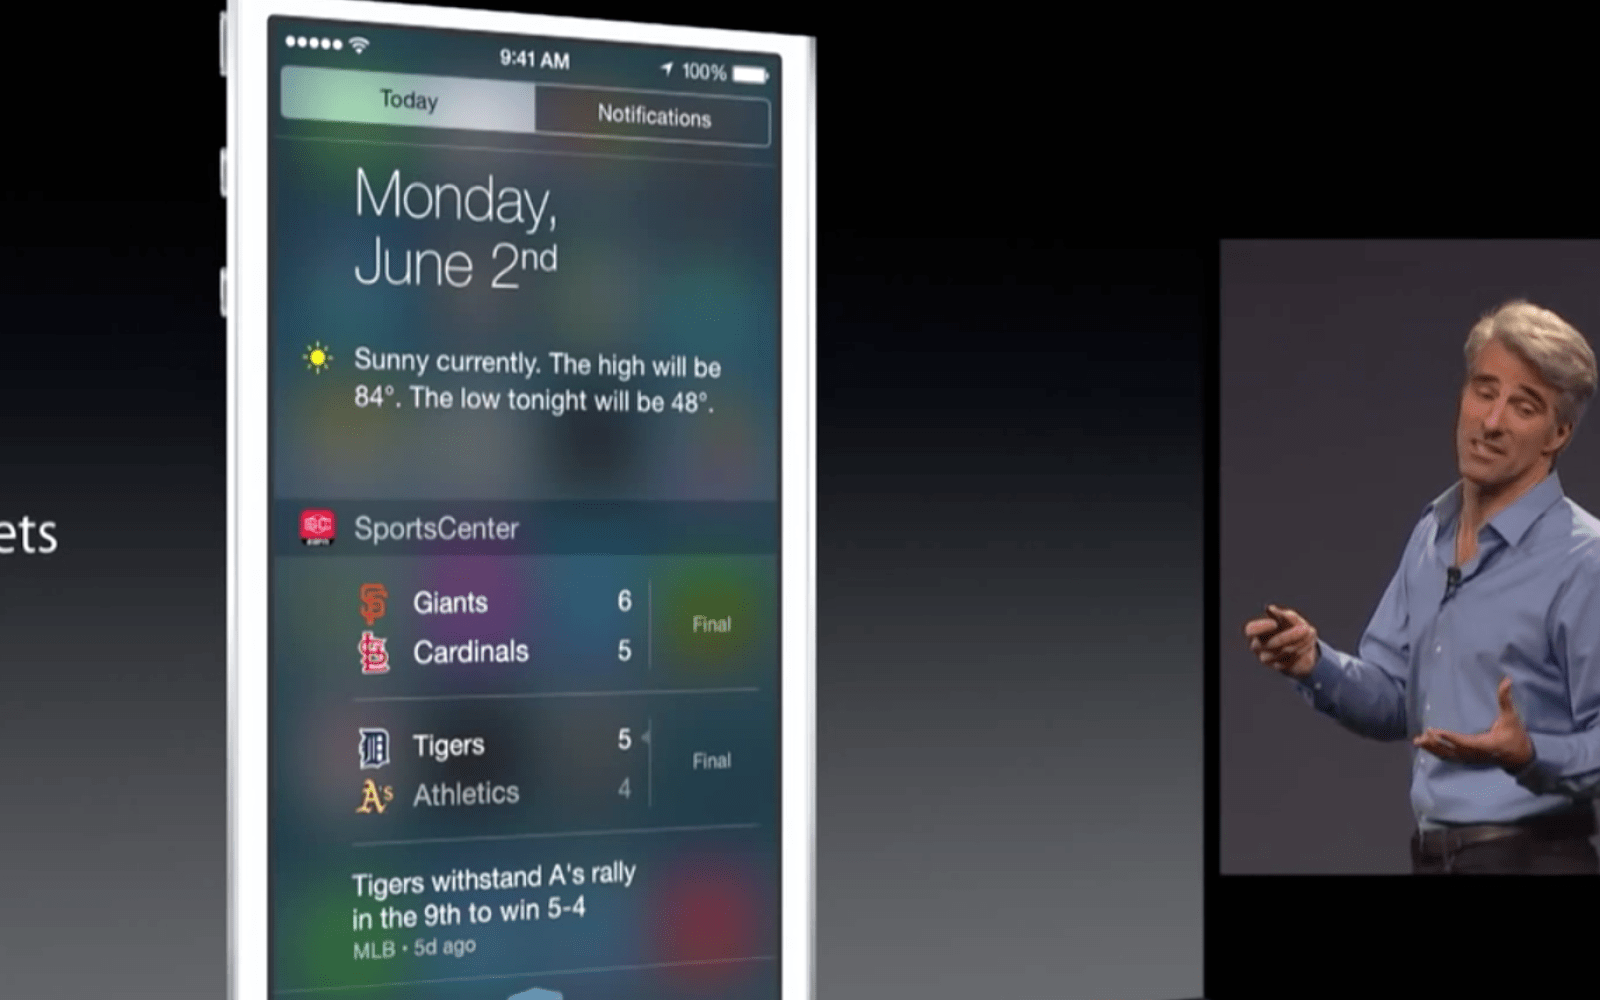 iOS 8 Roundup: The latest apps with Today widgets in Notification Center